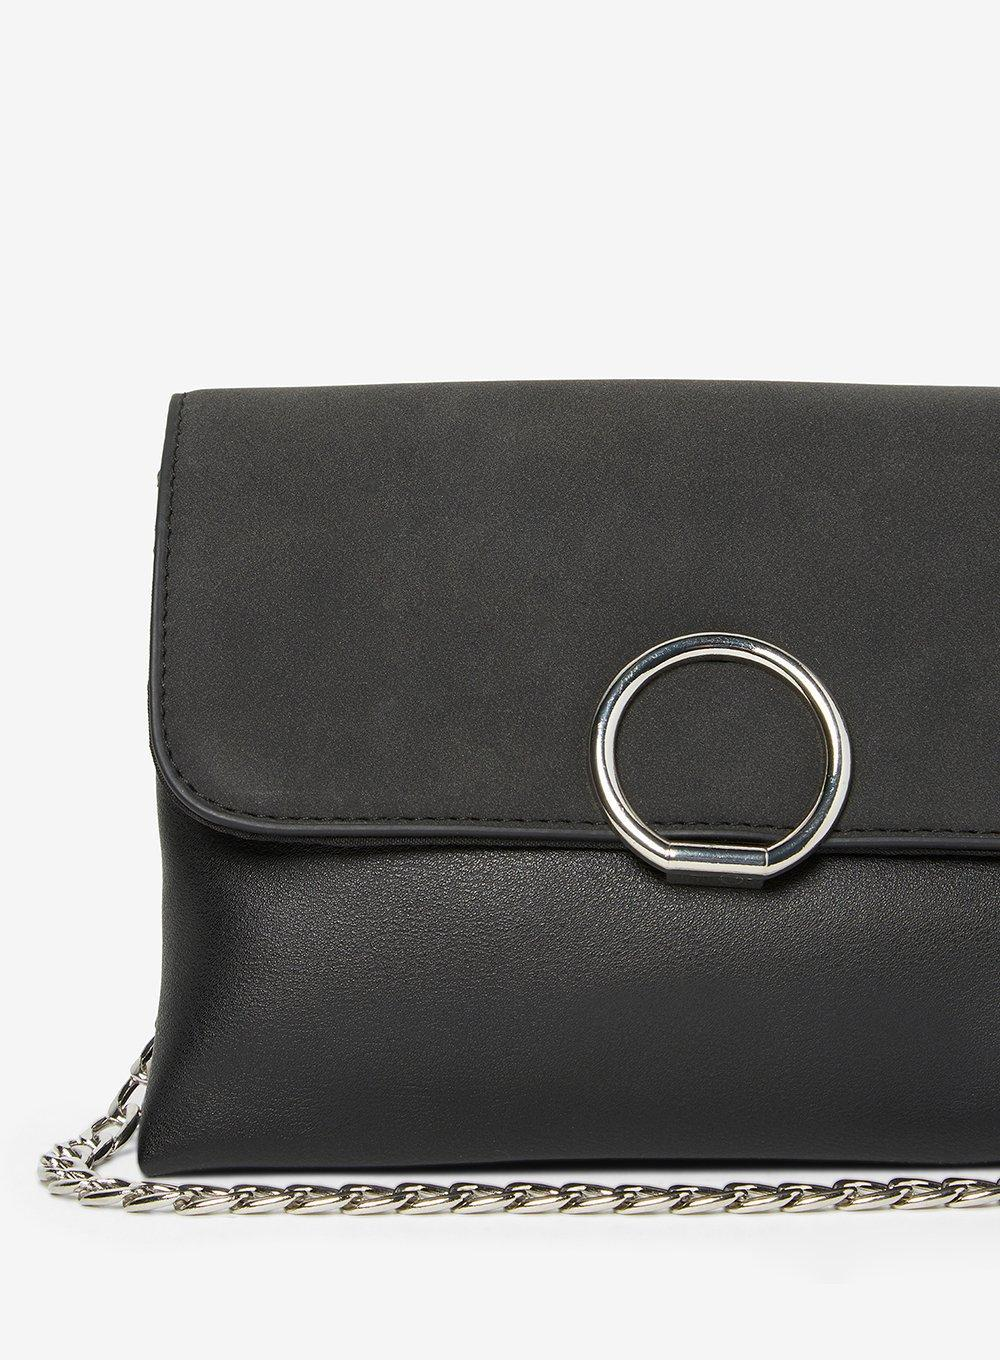 Dorothy Perkins Pieces Black 'faedra' Cross Body Bag